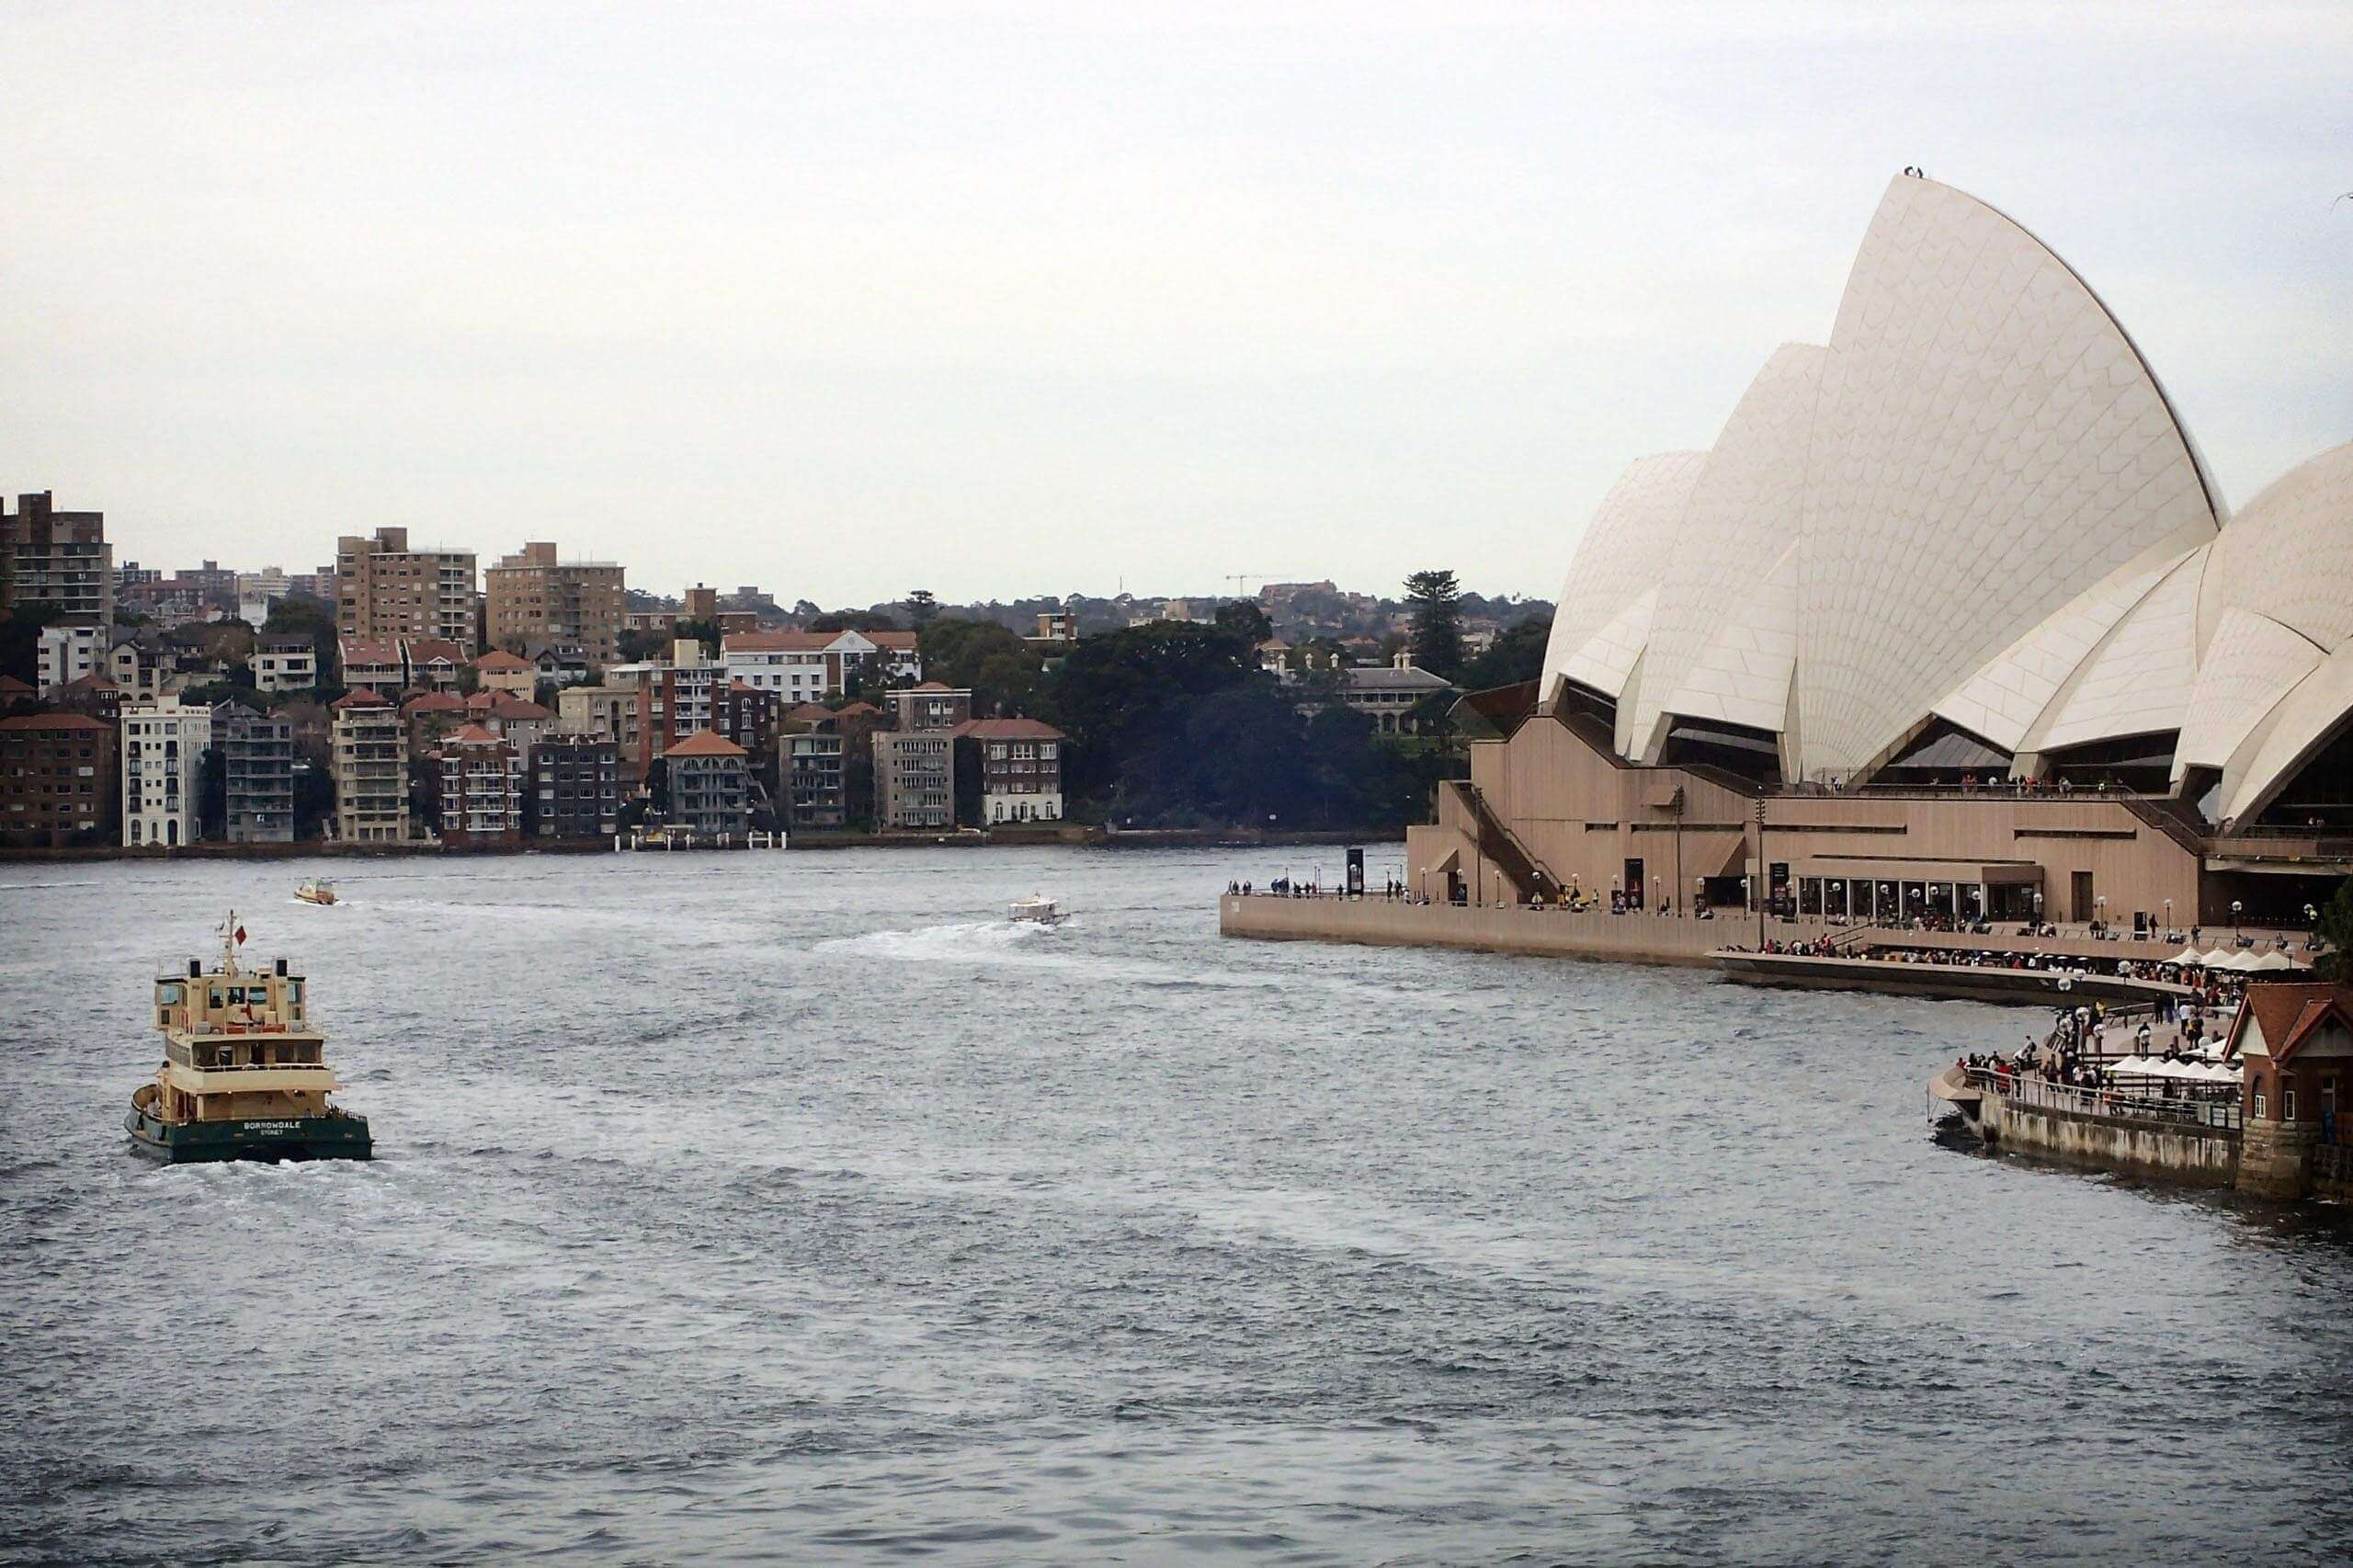 Sydney ferry next to Sydney opera House. Photo by Gabriel Ben-Yosef